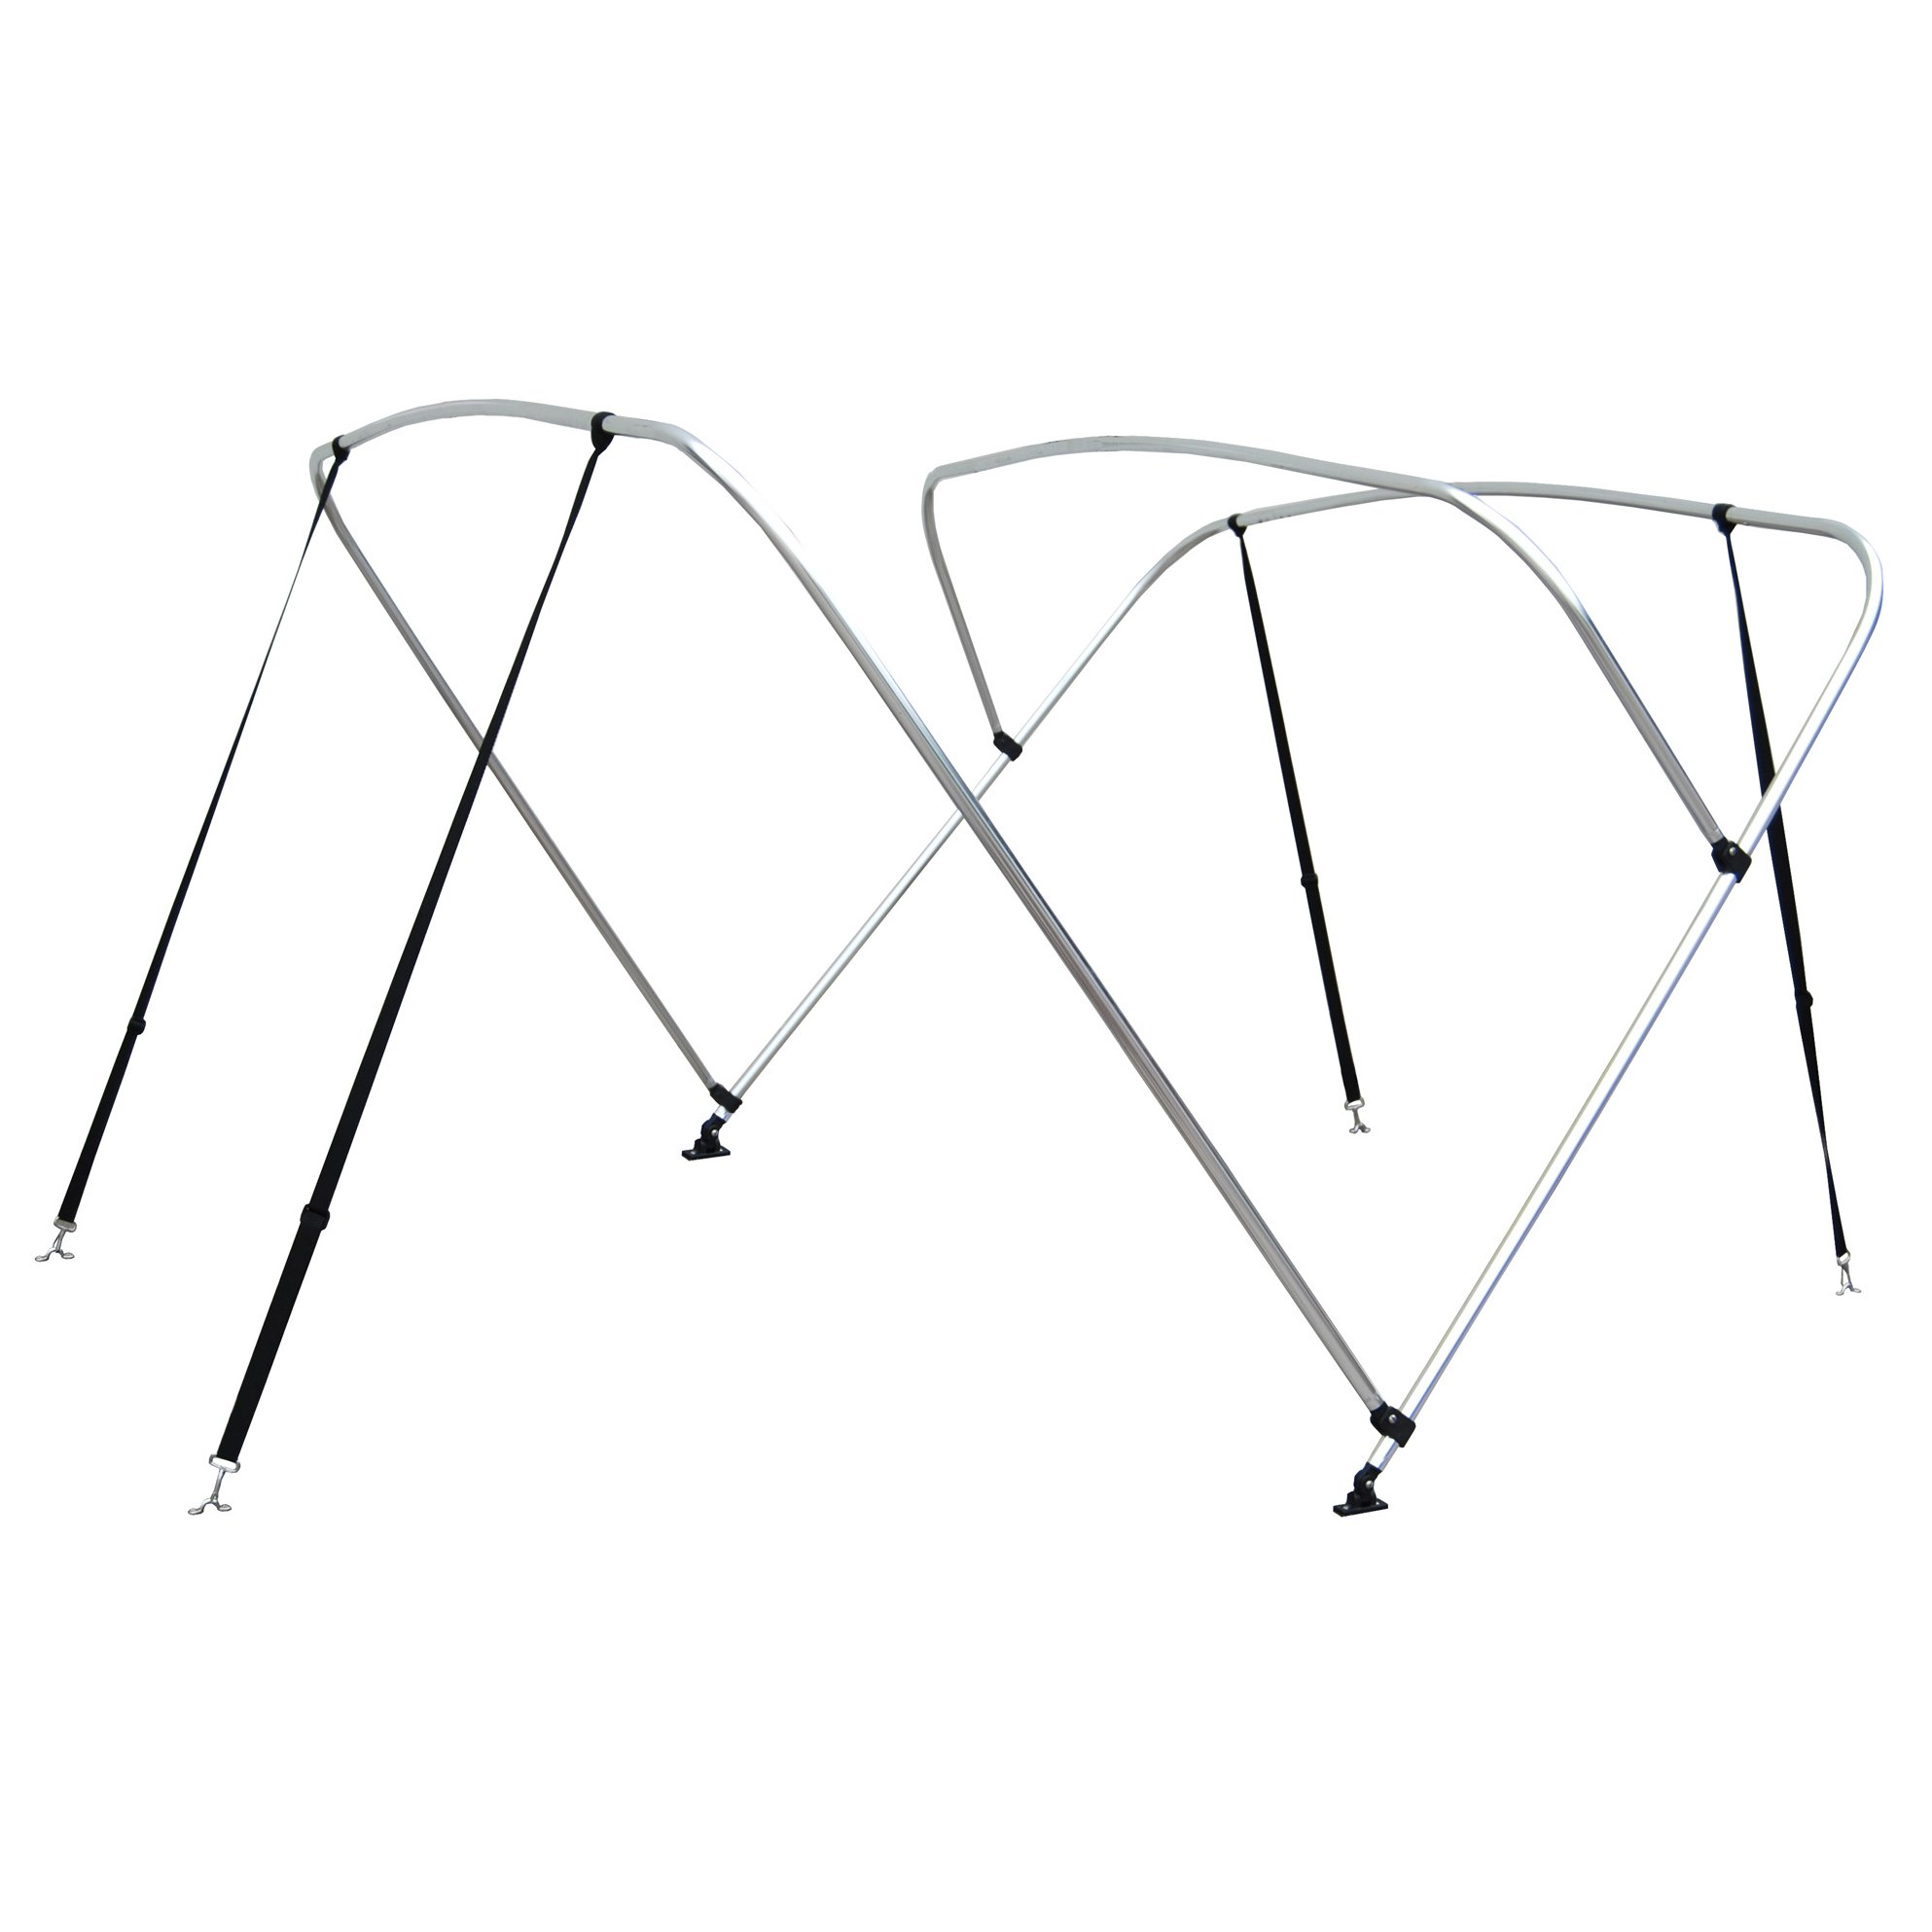 Shademate White Vinyl Stainless 3-Bow Bimini Top 5'L x 32''H 79''-84'' Wide